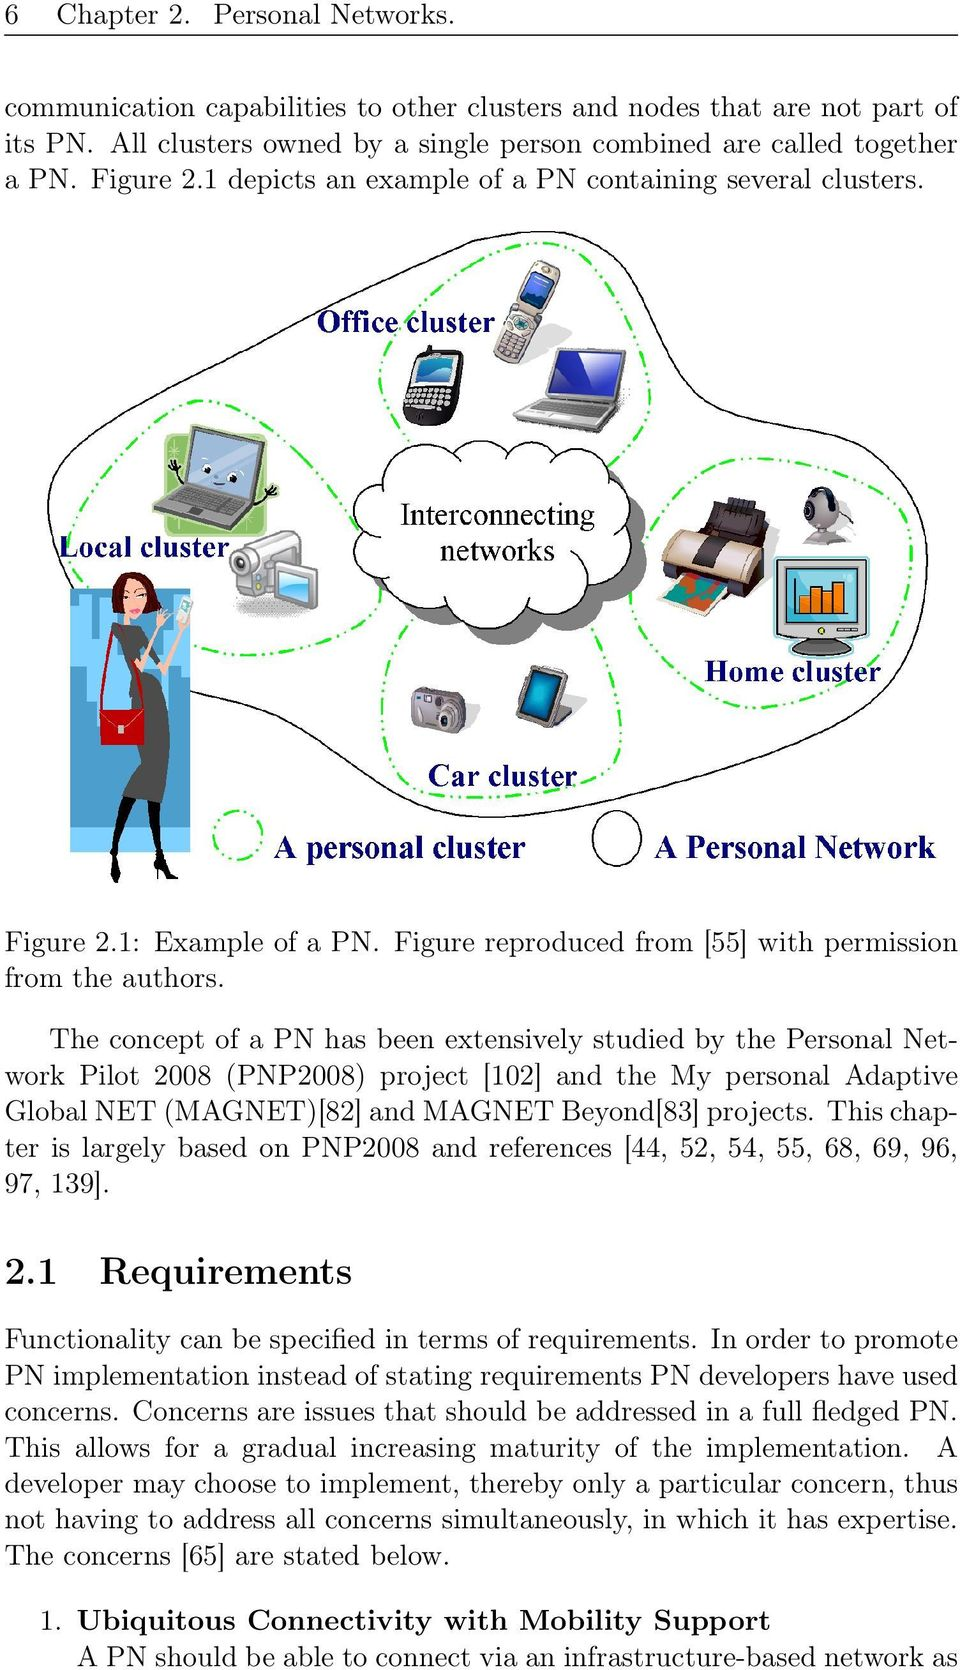 The concept of a PN has been extensively studied by the Personal Network Pilot 2008 (PNP2008) project [102] and the My personal Adaptive Global NET (MAGNET)[82] and MAGNET Beyond[83] projects.